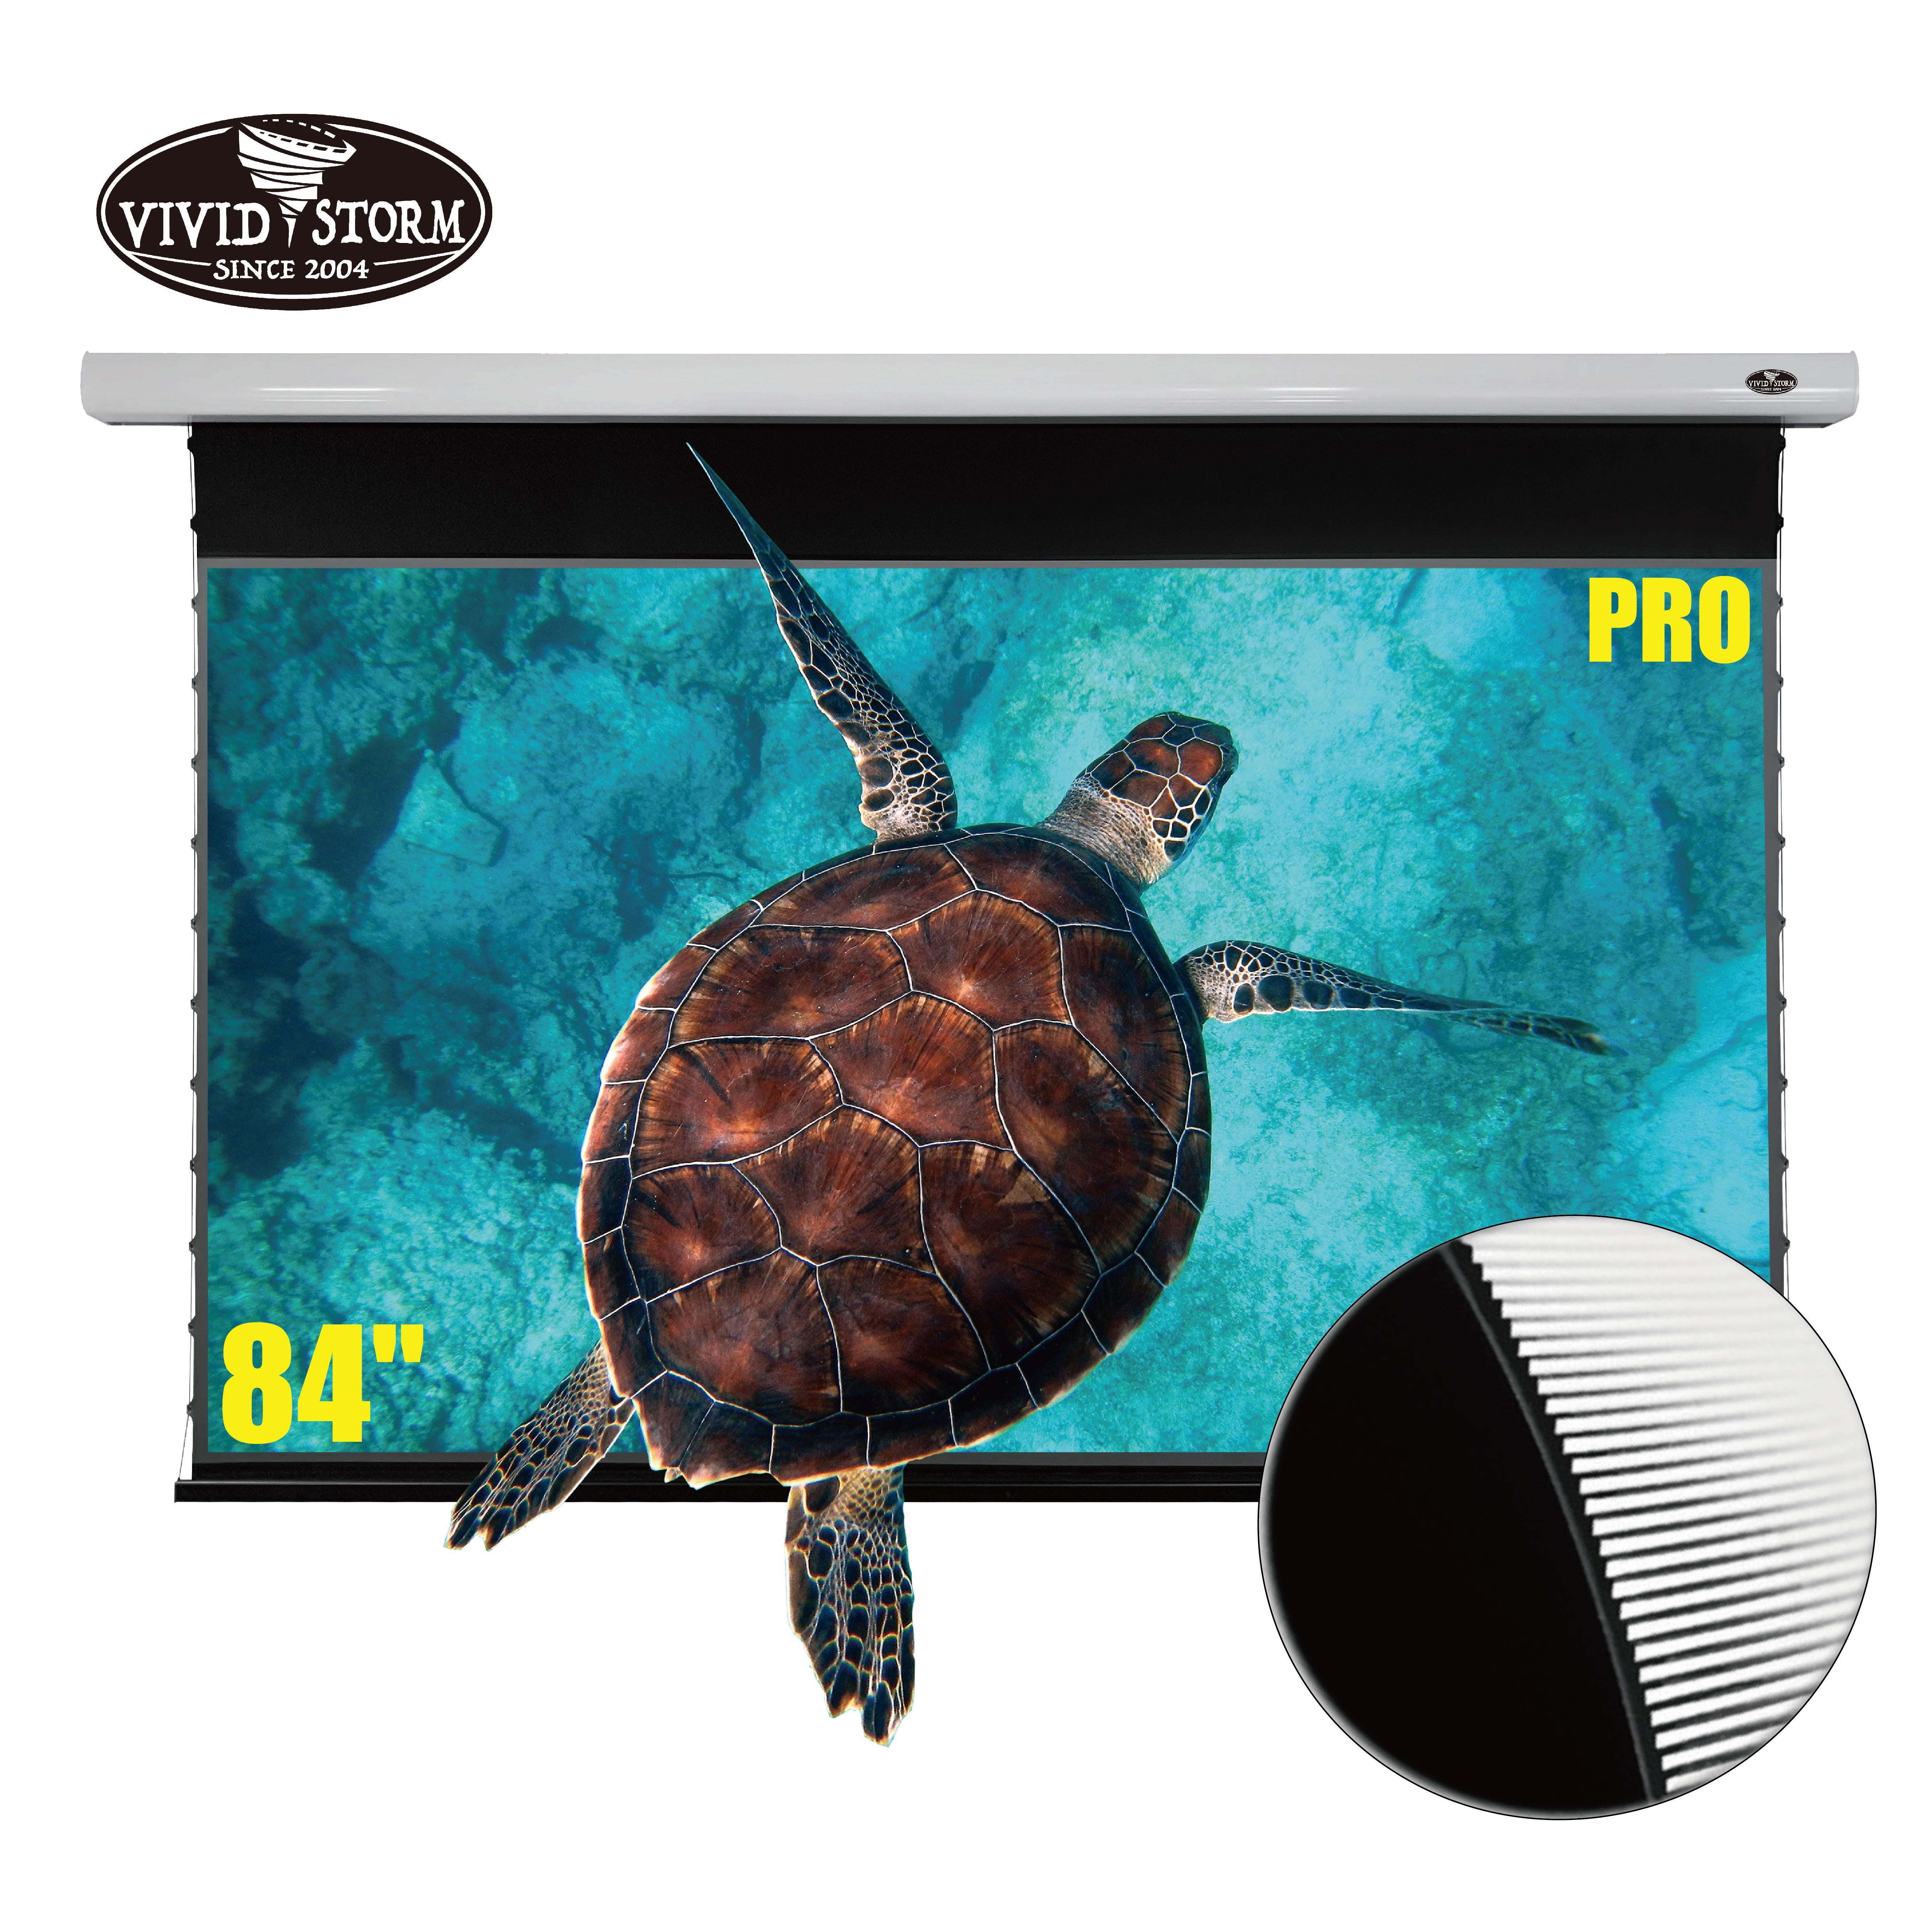 VIVIDSTORM 84 inch Drop Down screen UST Projector Ultra-Short Throw Ambient Light Rejecting home cinema 4K projector screen White housing